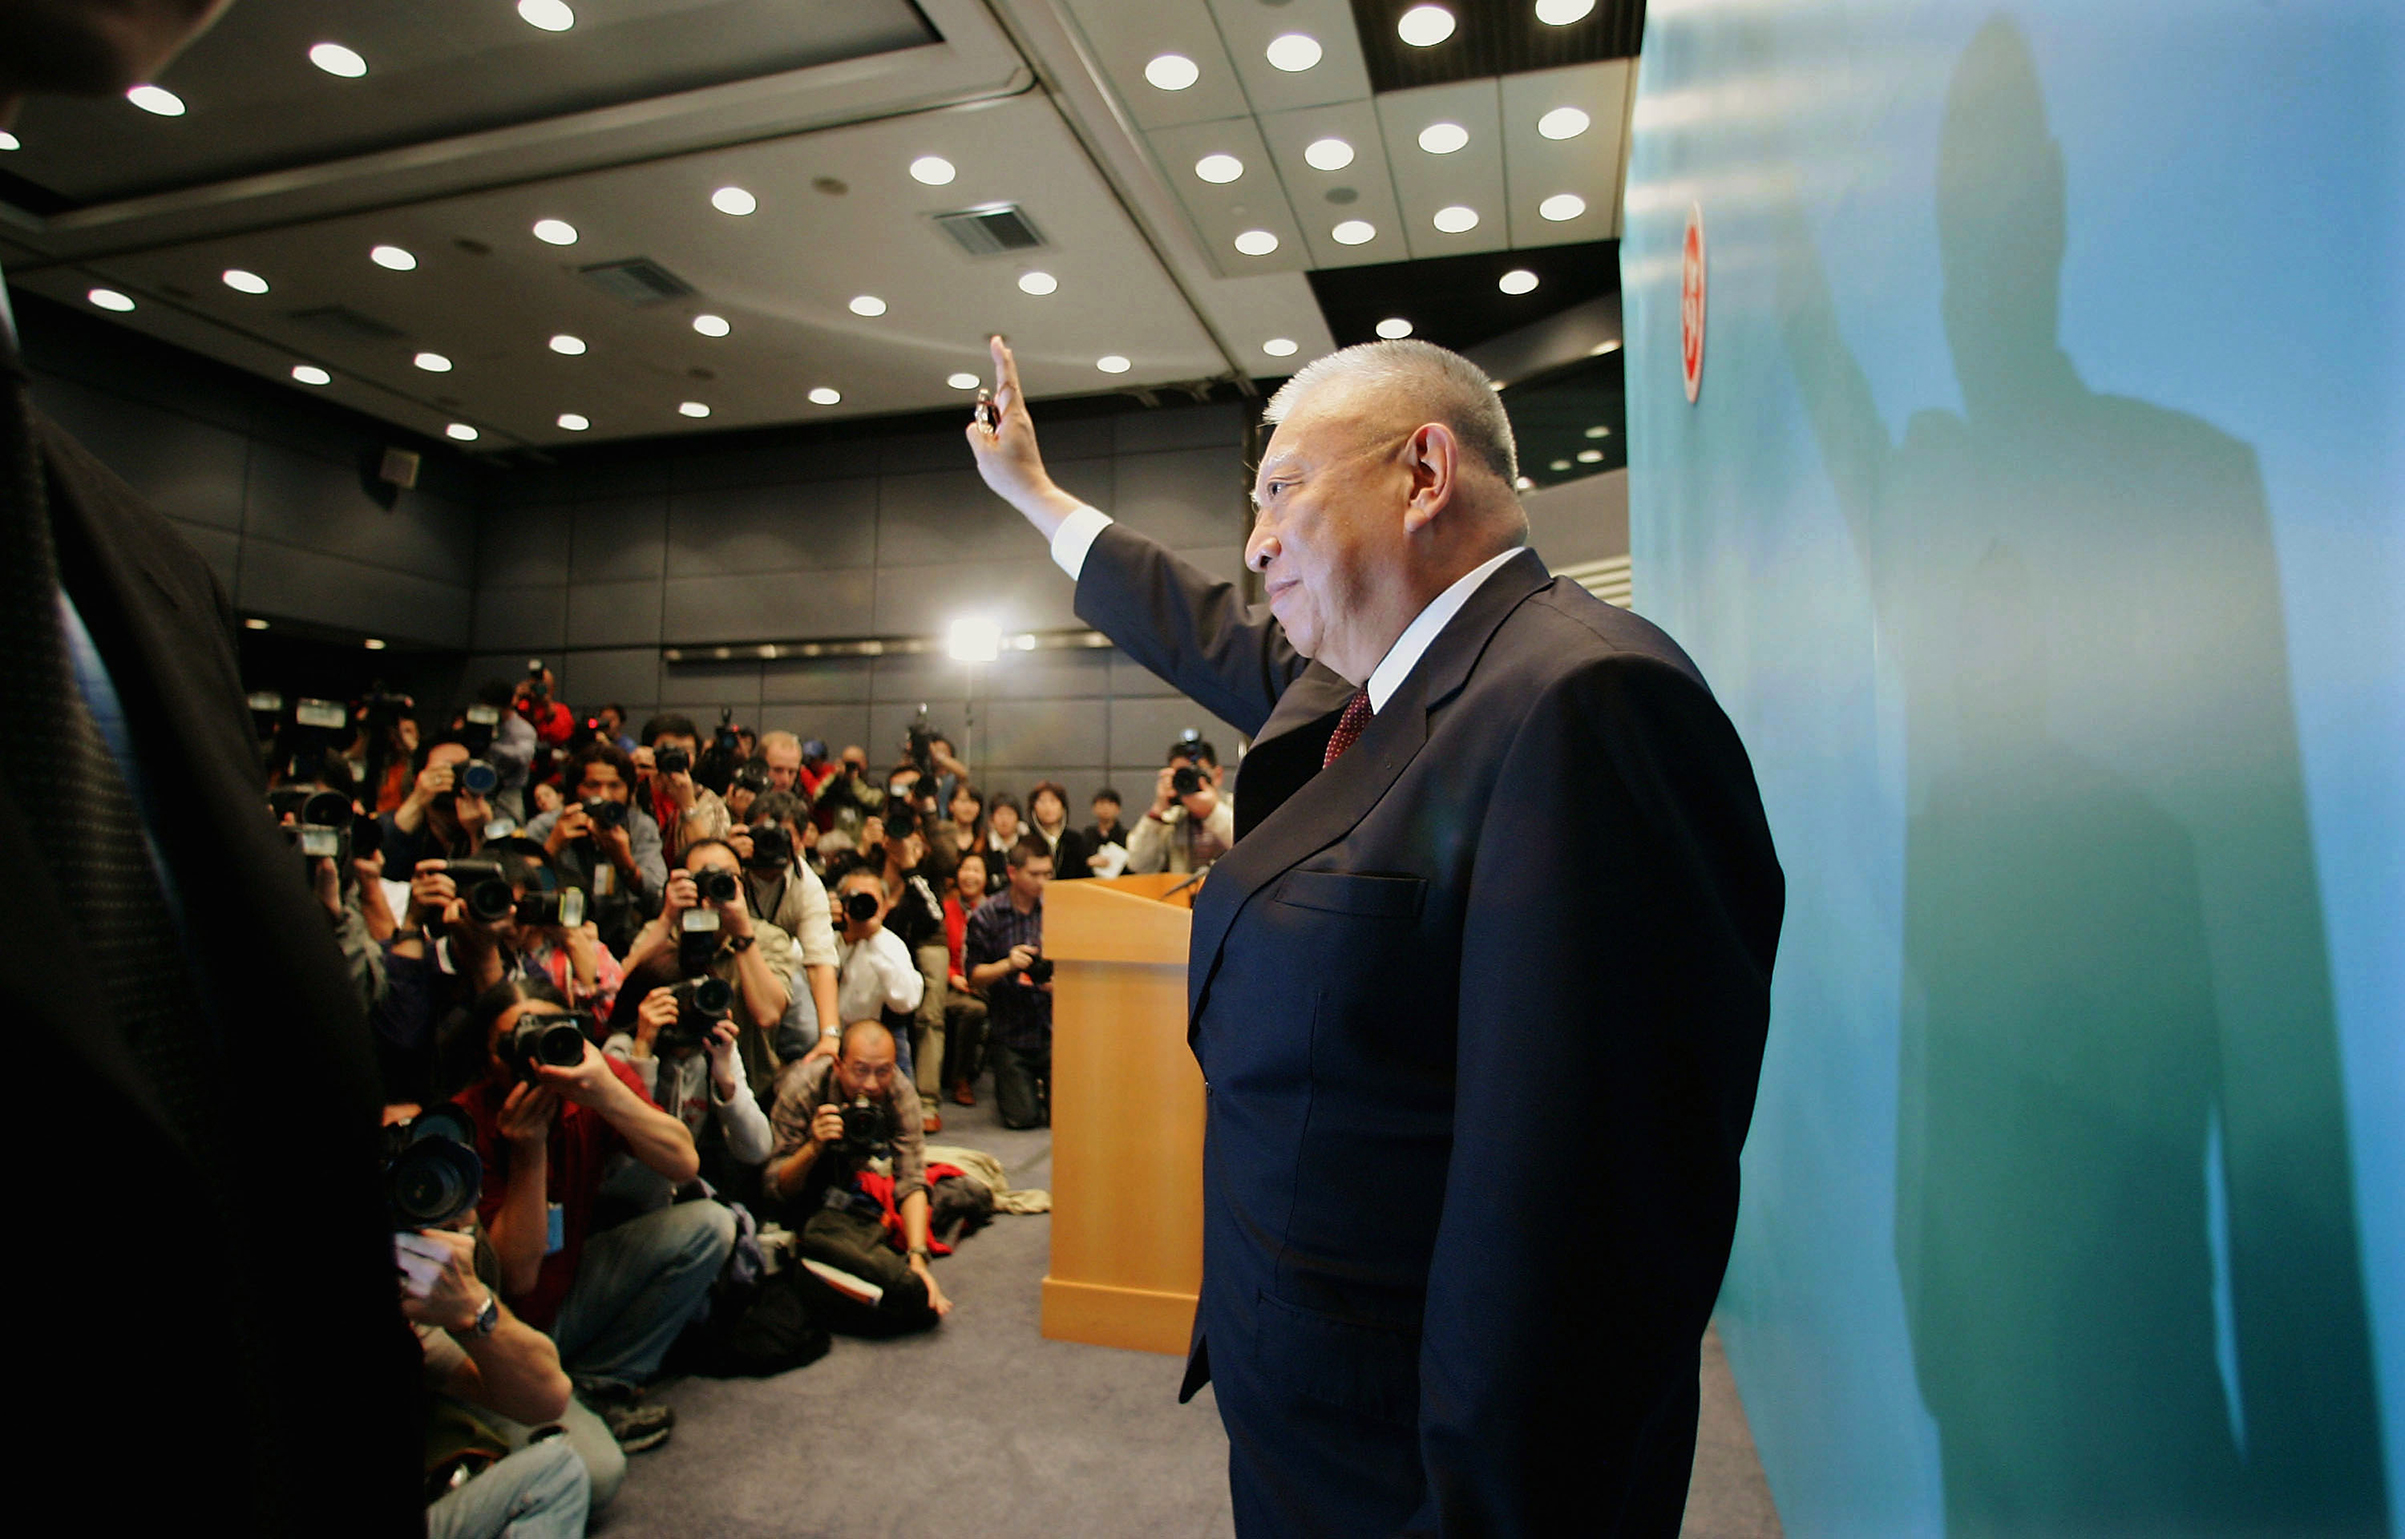 Hong Kong's first Chief Executive Tung Chee-hwa leaves a news conference after announcing his resignation on March 10, 2005. Tung cited health reasons for cutting short what was to have been an eight-year tenure. His administration was plagued by economic recession, policy blunders and unease over China's interference.